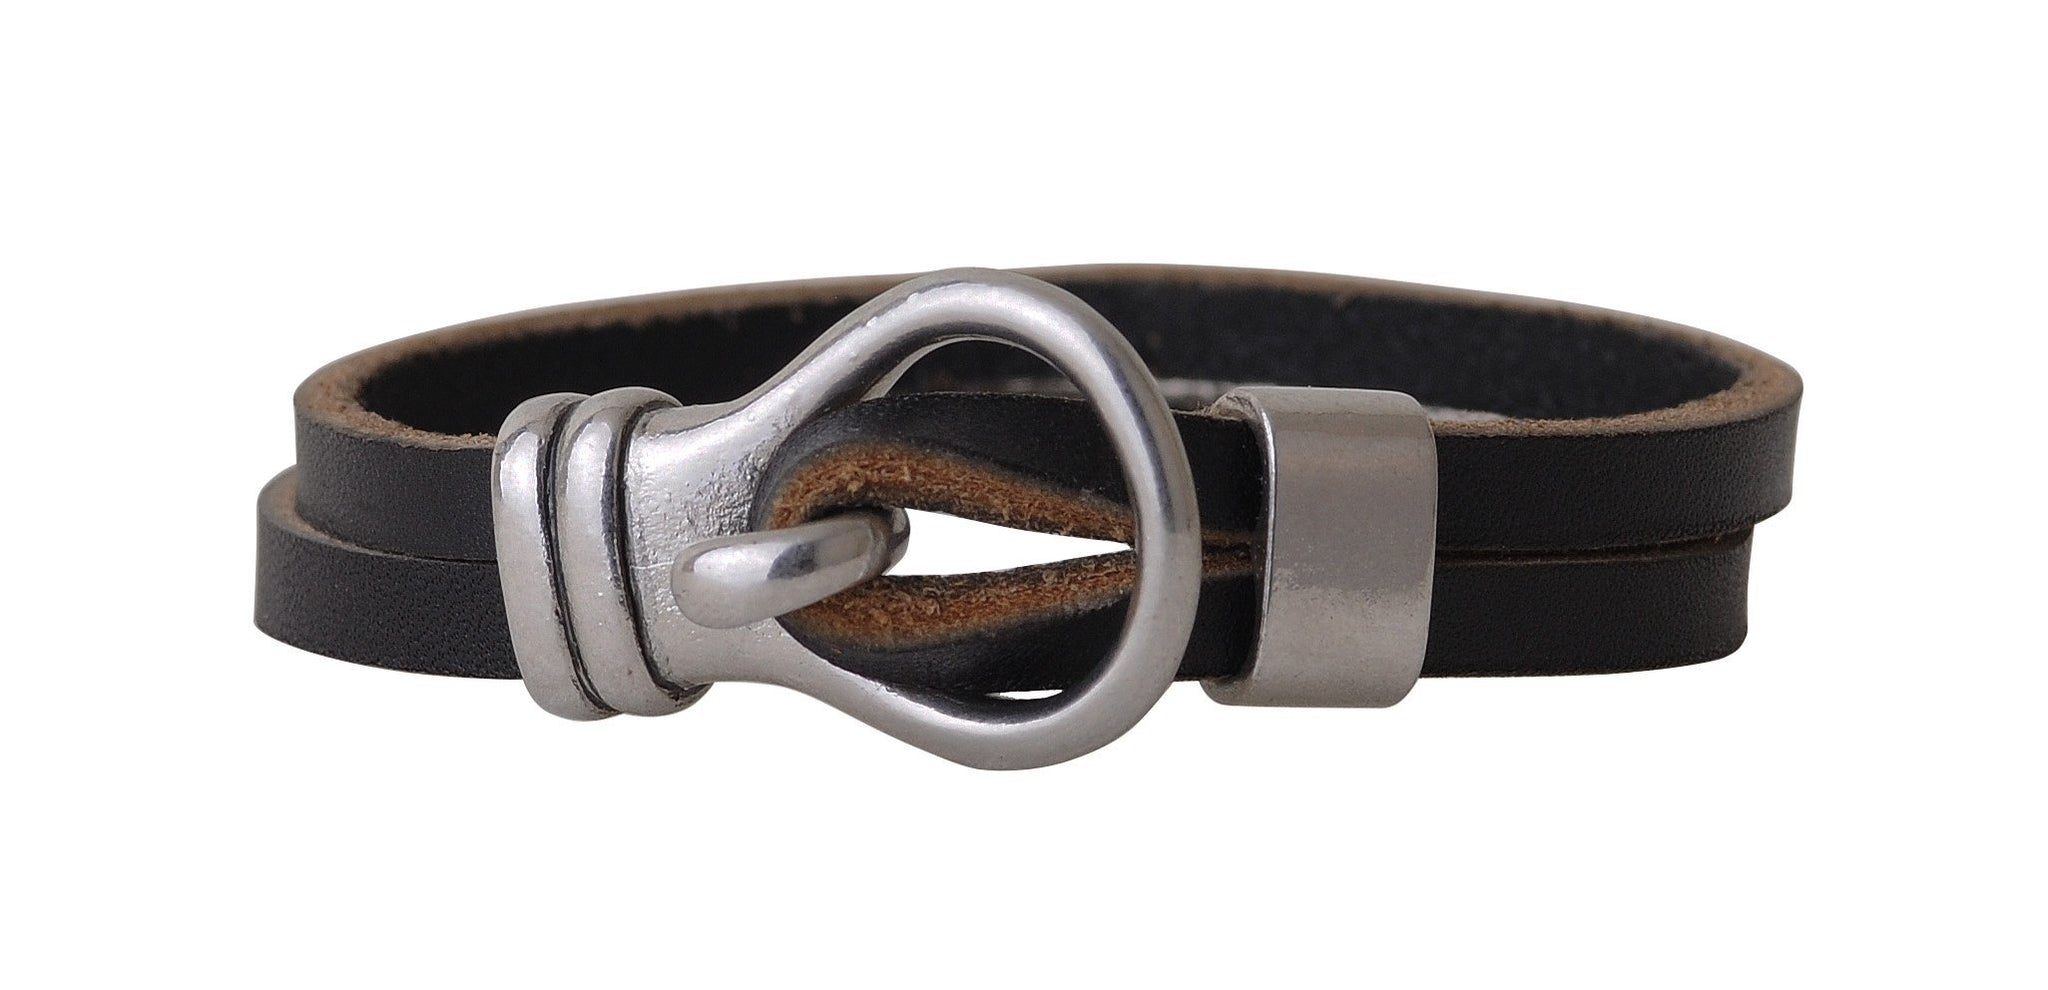 Leather Bracelet with Hook and Loop Closure